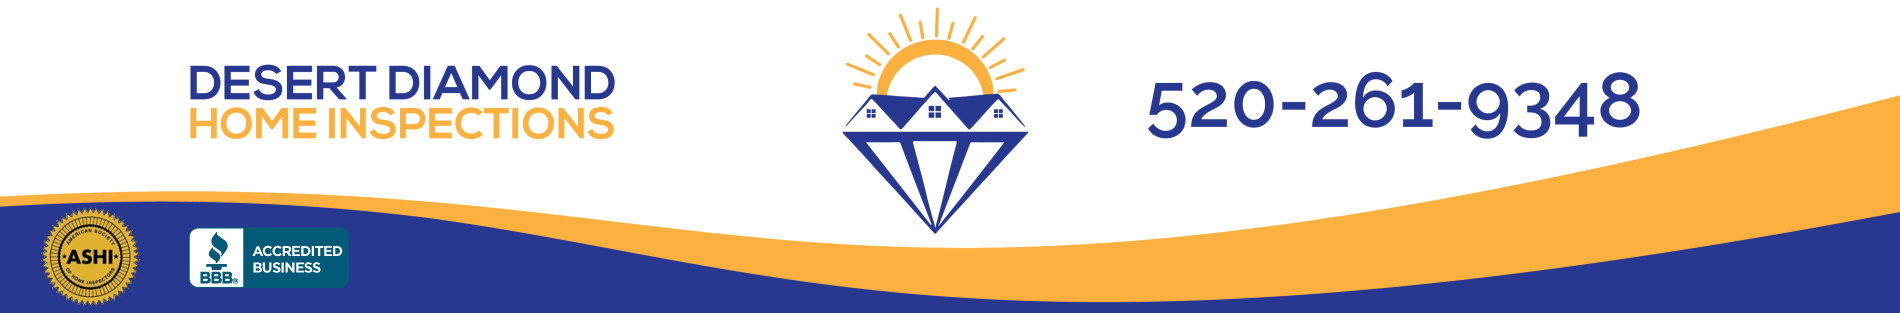 Desert Diamond Home Inspections